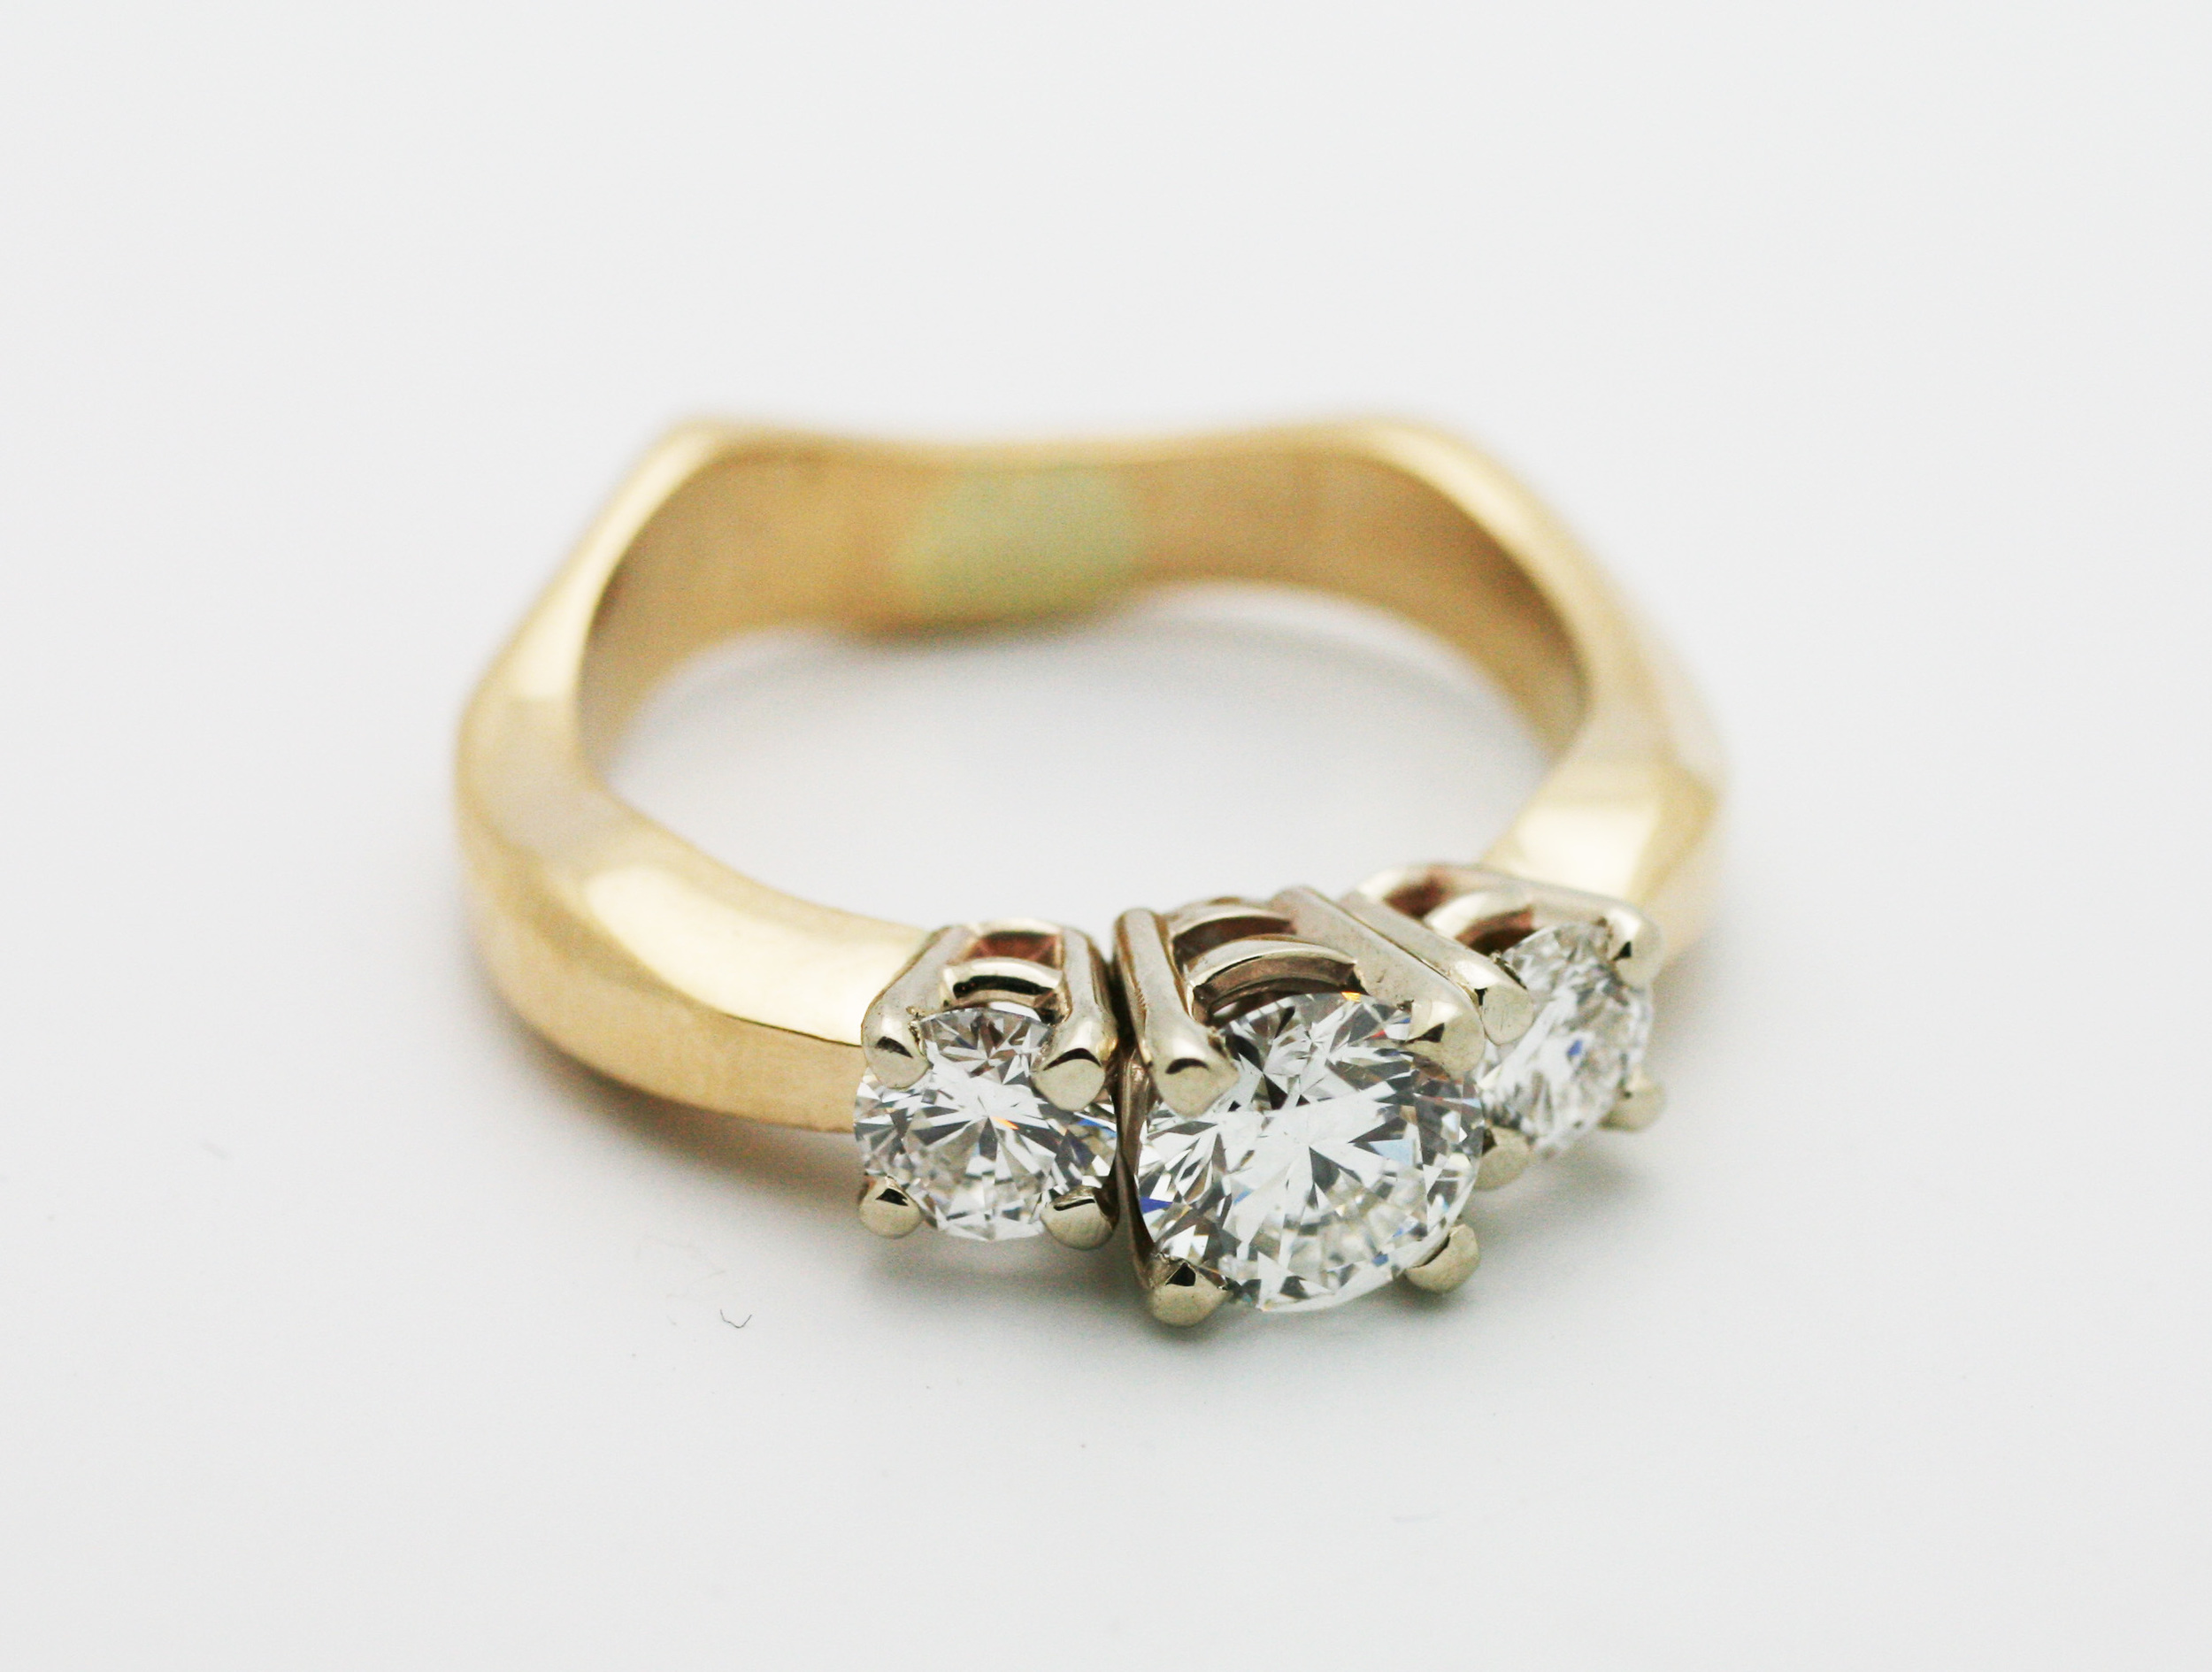 0.80tcw diamond center stone, 0.40tcw diamond side stones, 14kt yellow gold.  Starting at $5800 for this stone size andSI clarity for all stones  Can be customizable with any stone, size, metal etc.